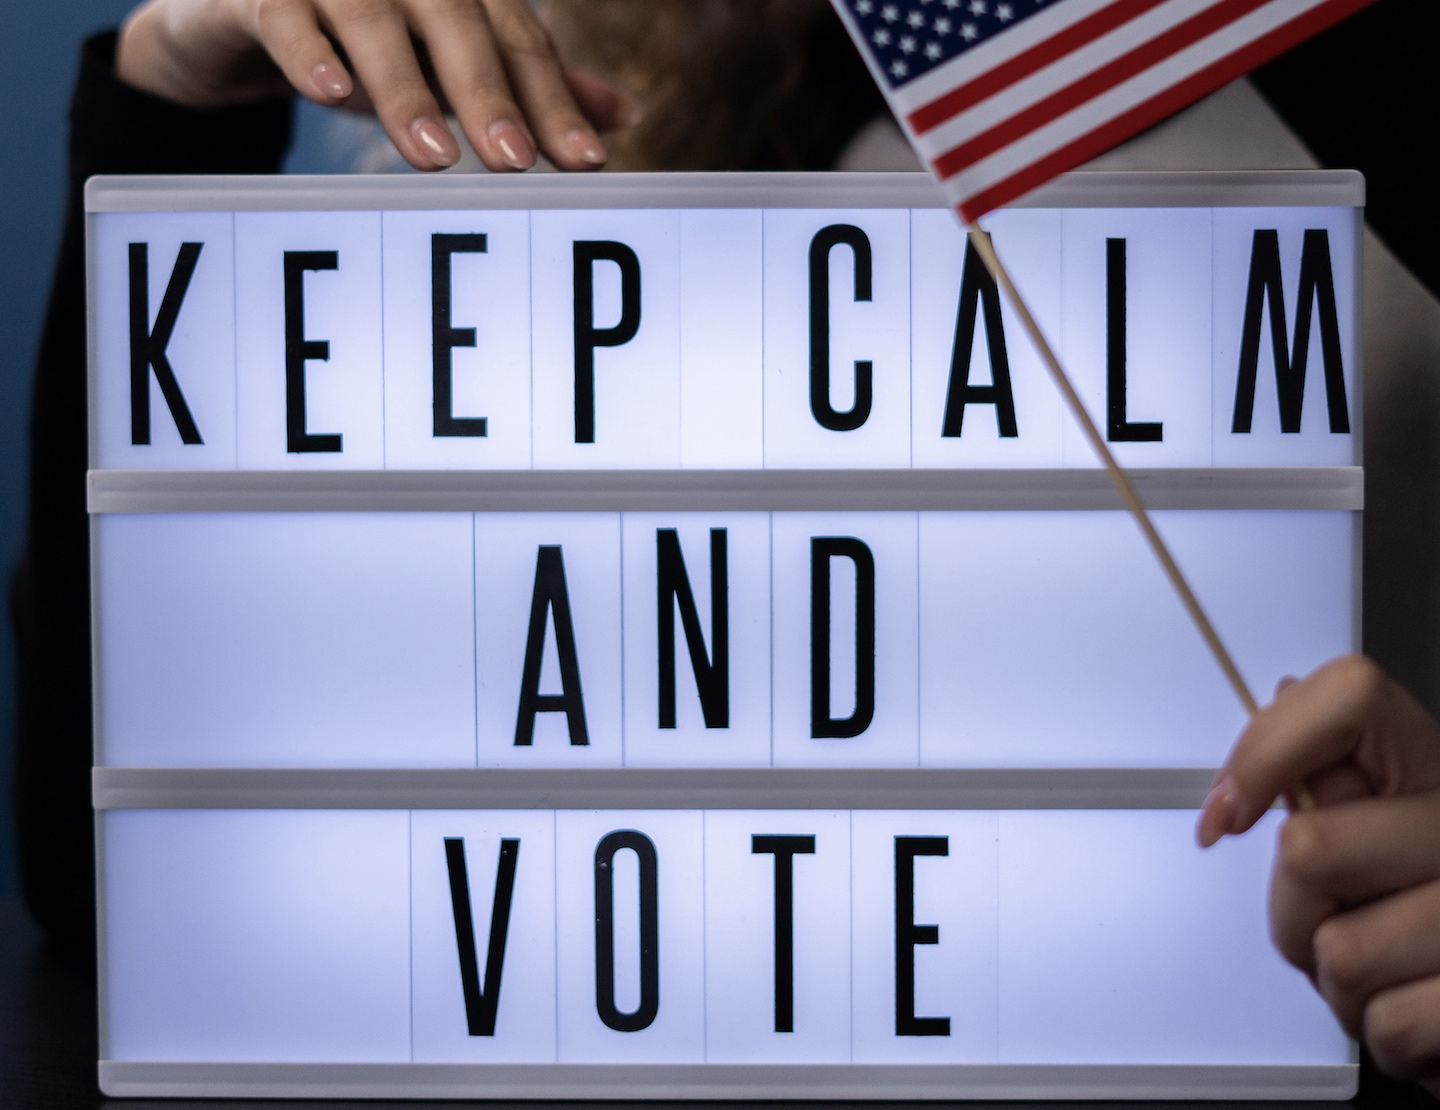 Picture of a sign that says Keep Calm and Vote with woman's hands holding small American Flag